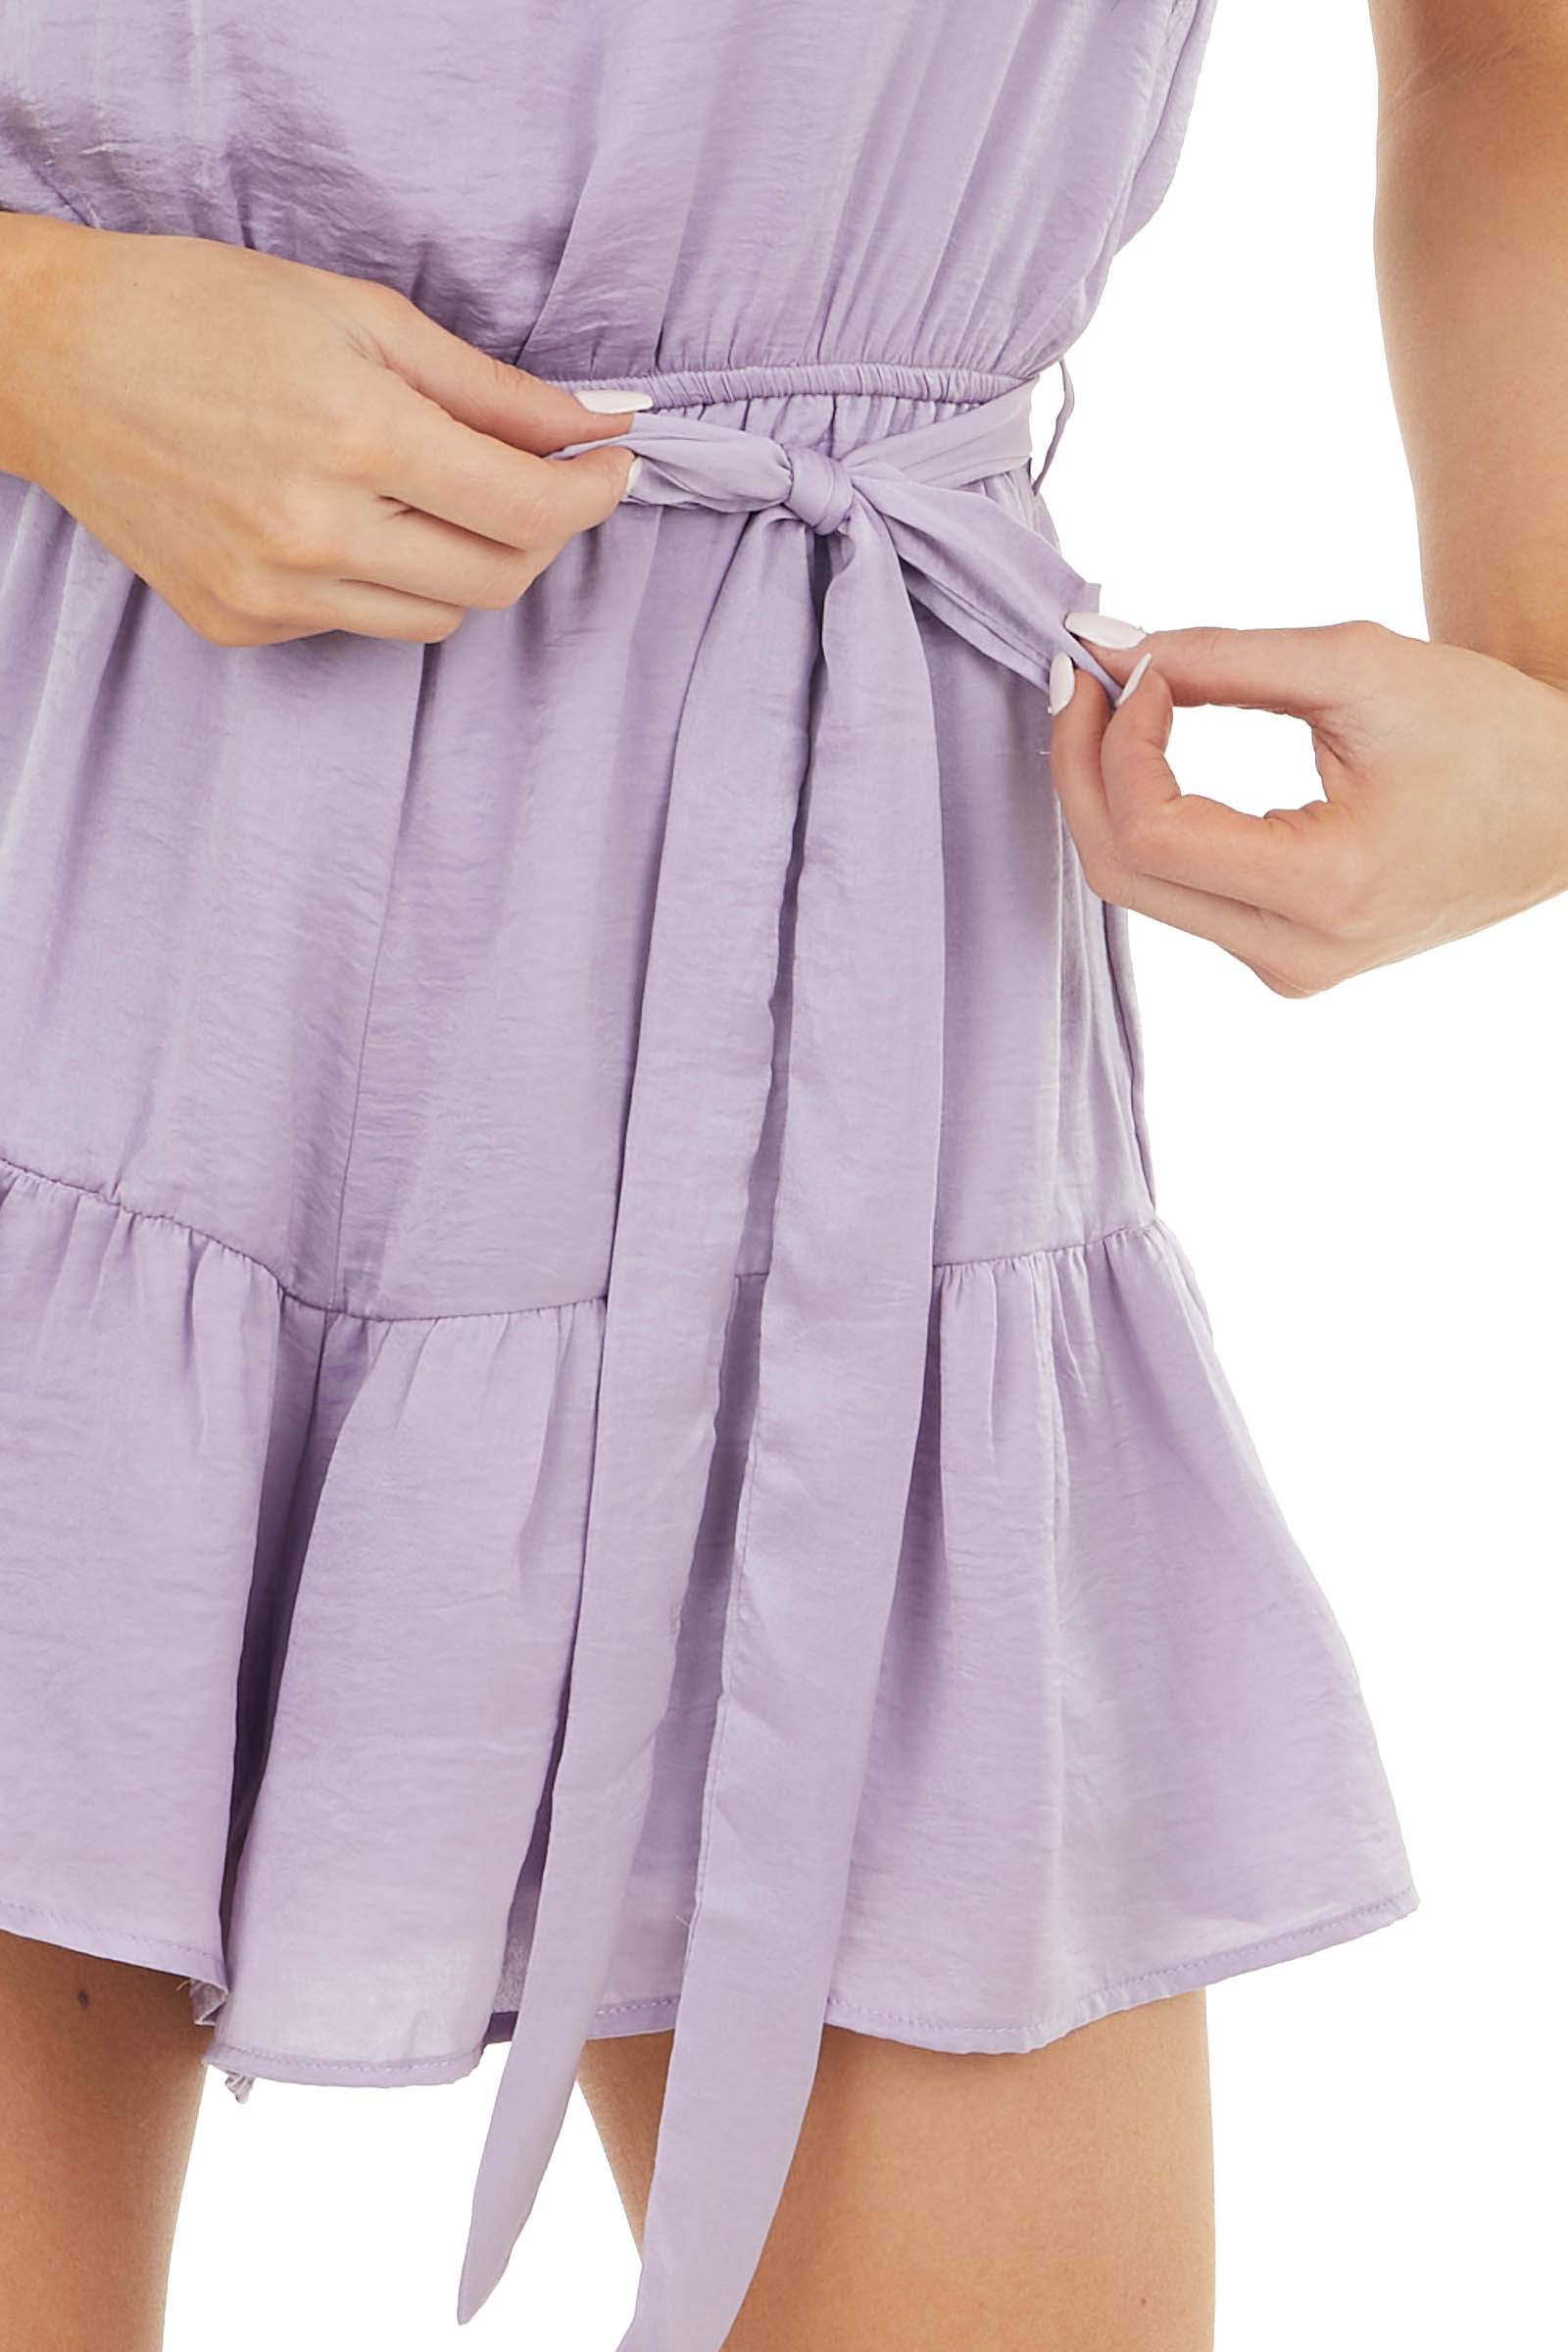 Lavender Silky Strapless Woven Romper with Front Tie Detail